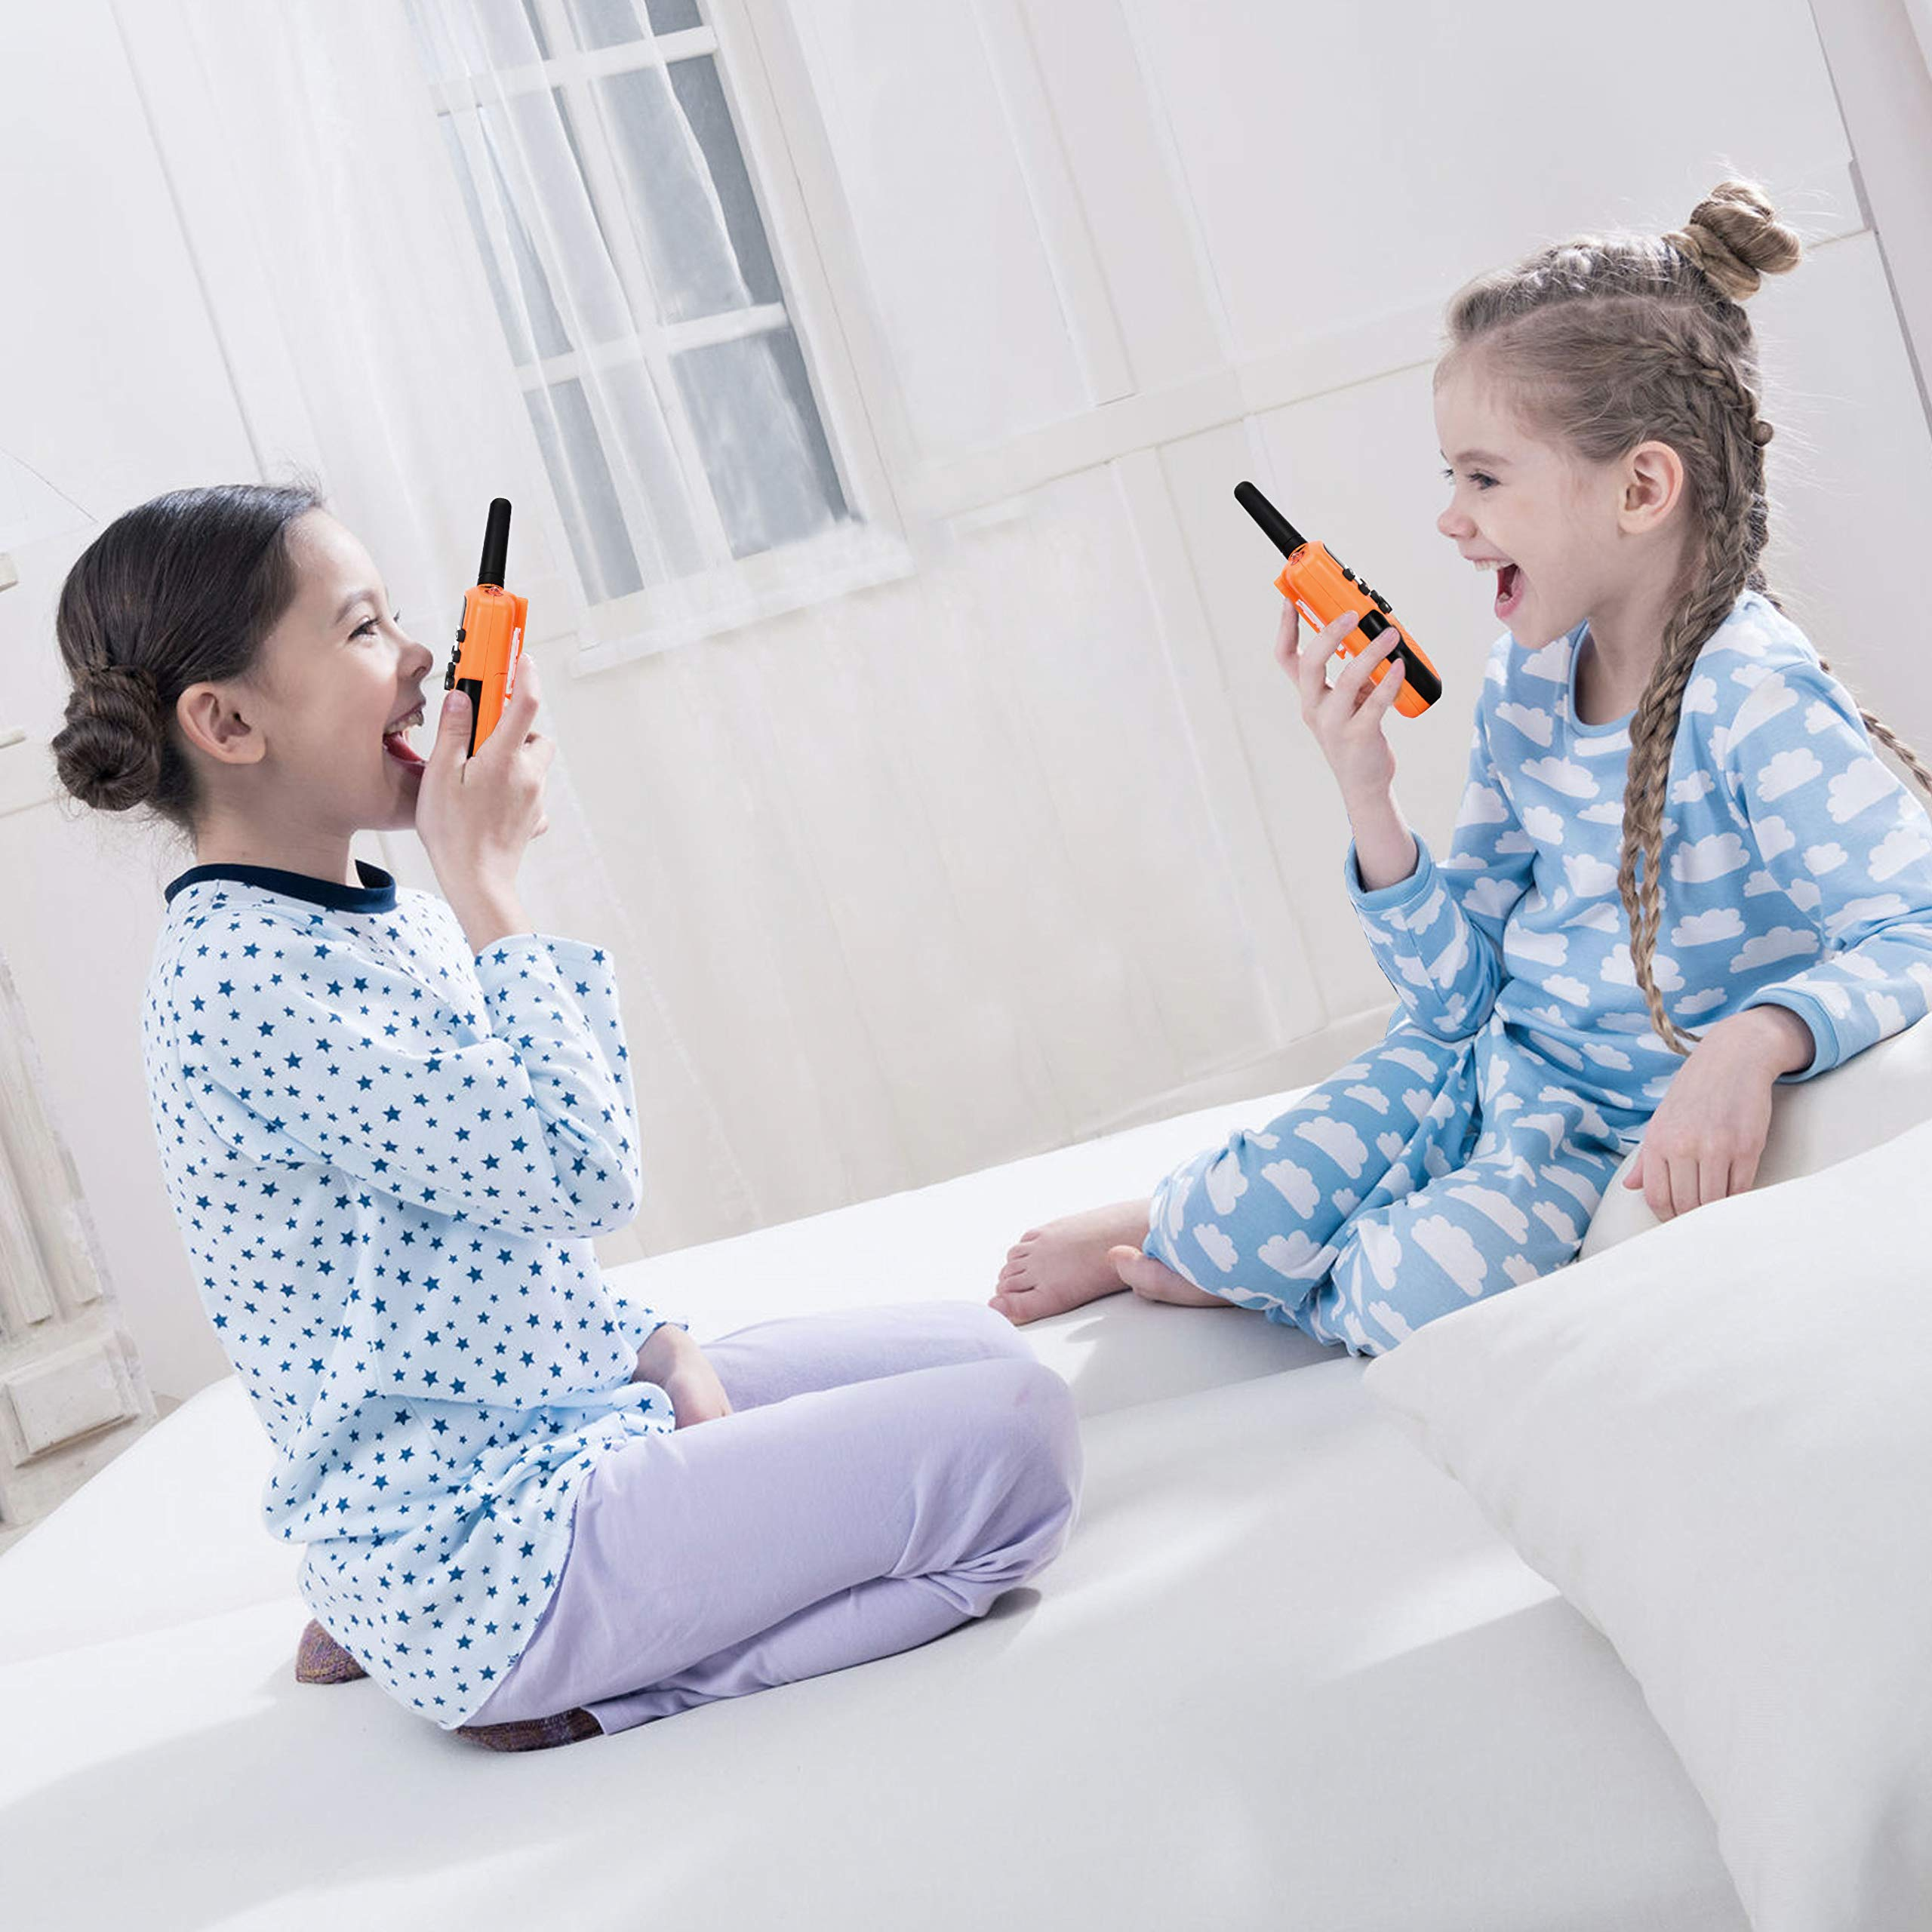 Walkie Talkies for Kids - (Vox Box) Voice Activated Walkie Talkies Toy for Kids, Two Way Radios Pair for Boys & Girls, Limited Edition Color Best Gift Long Range 3+ Miles Children's Walkie Talkie Set by MOBIUS Toys (Image #5)